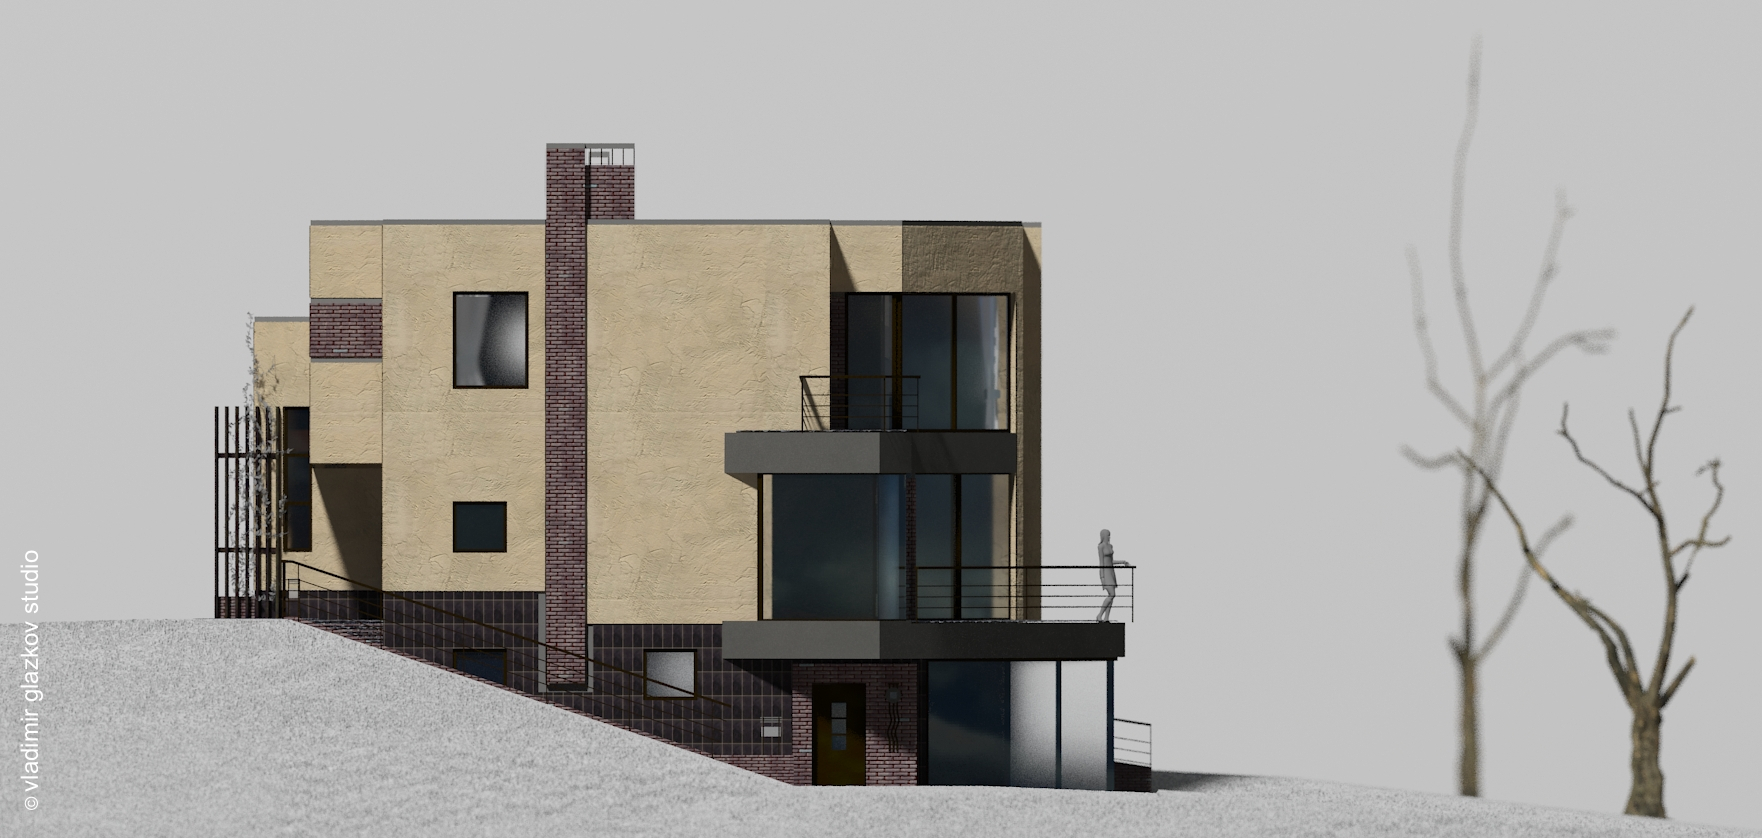 side elevation; Severn - house project with flat roof and terraces on the slope